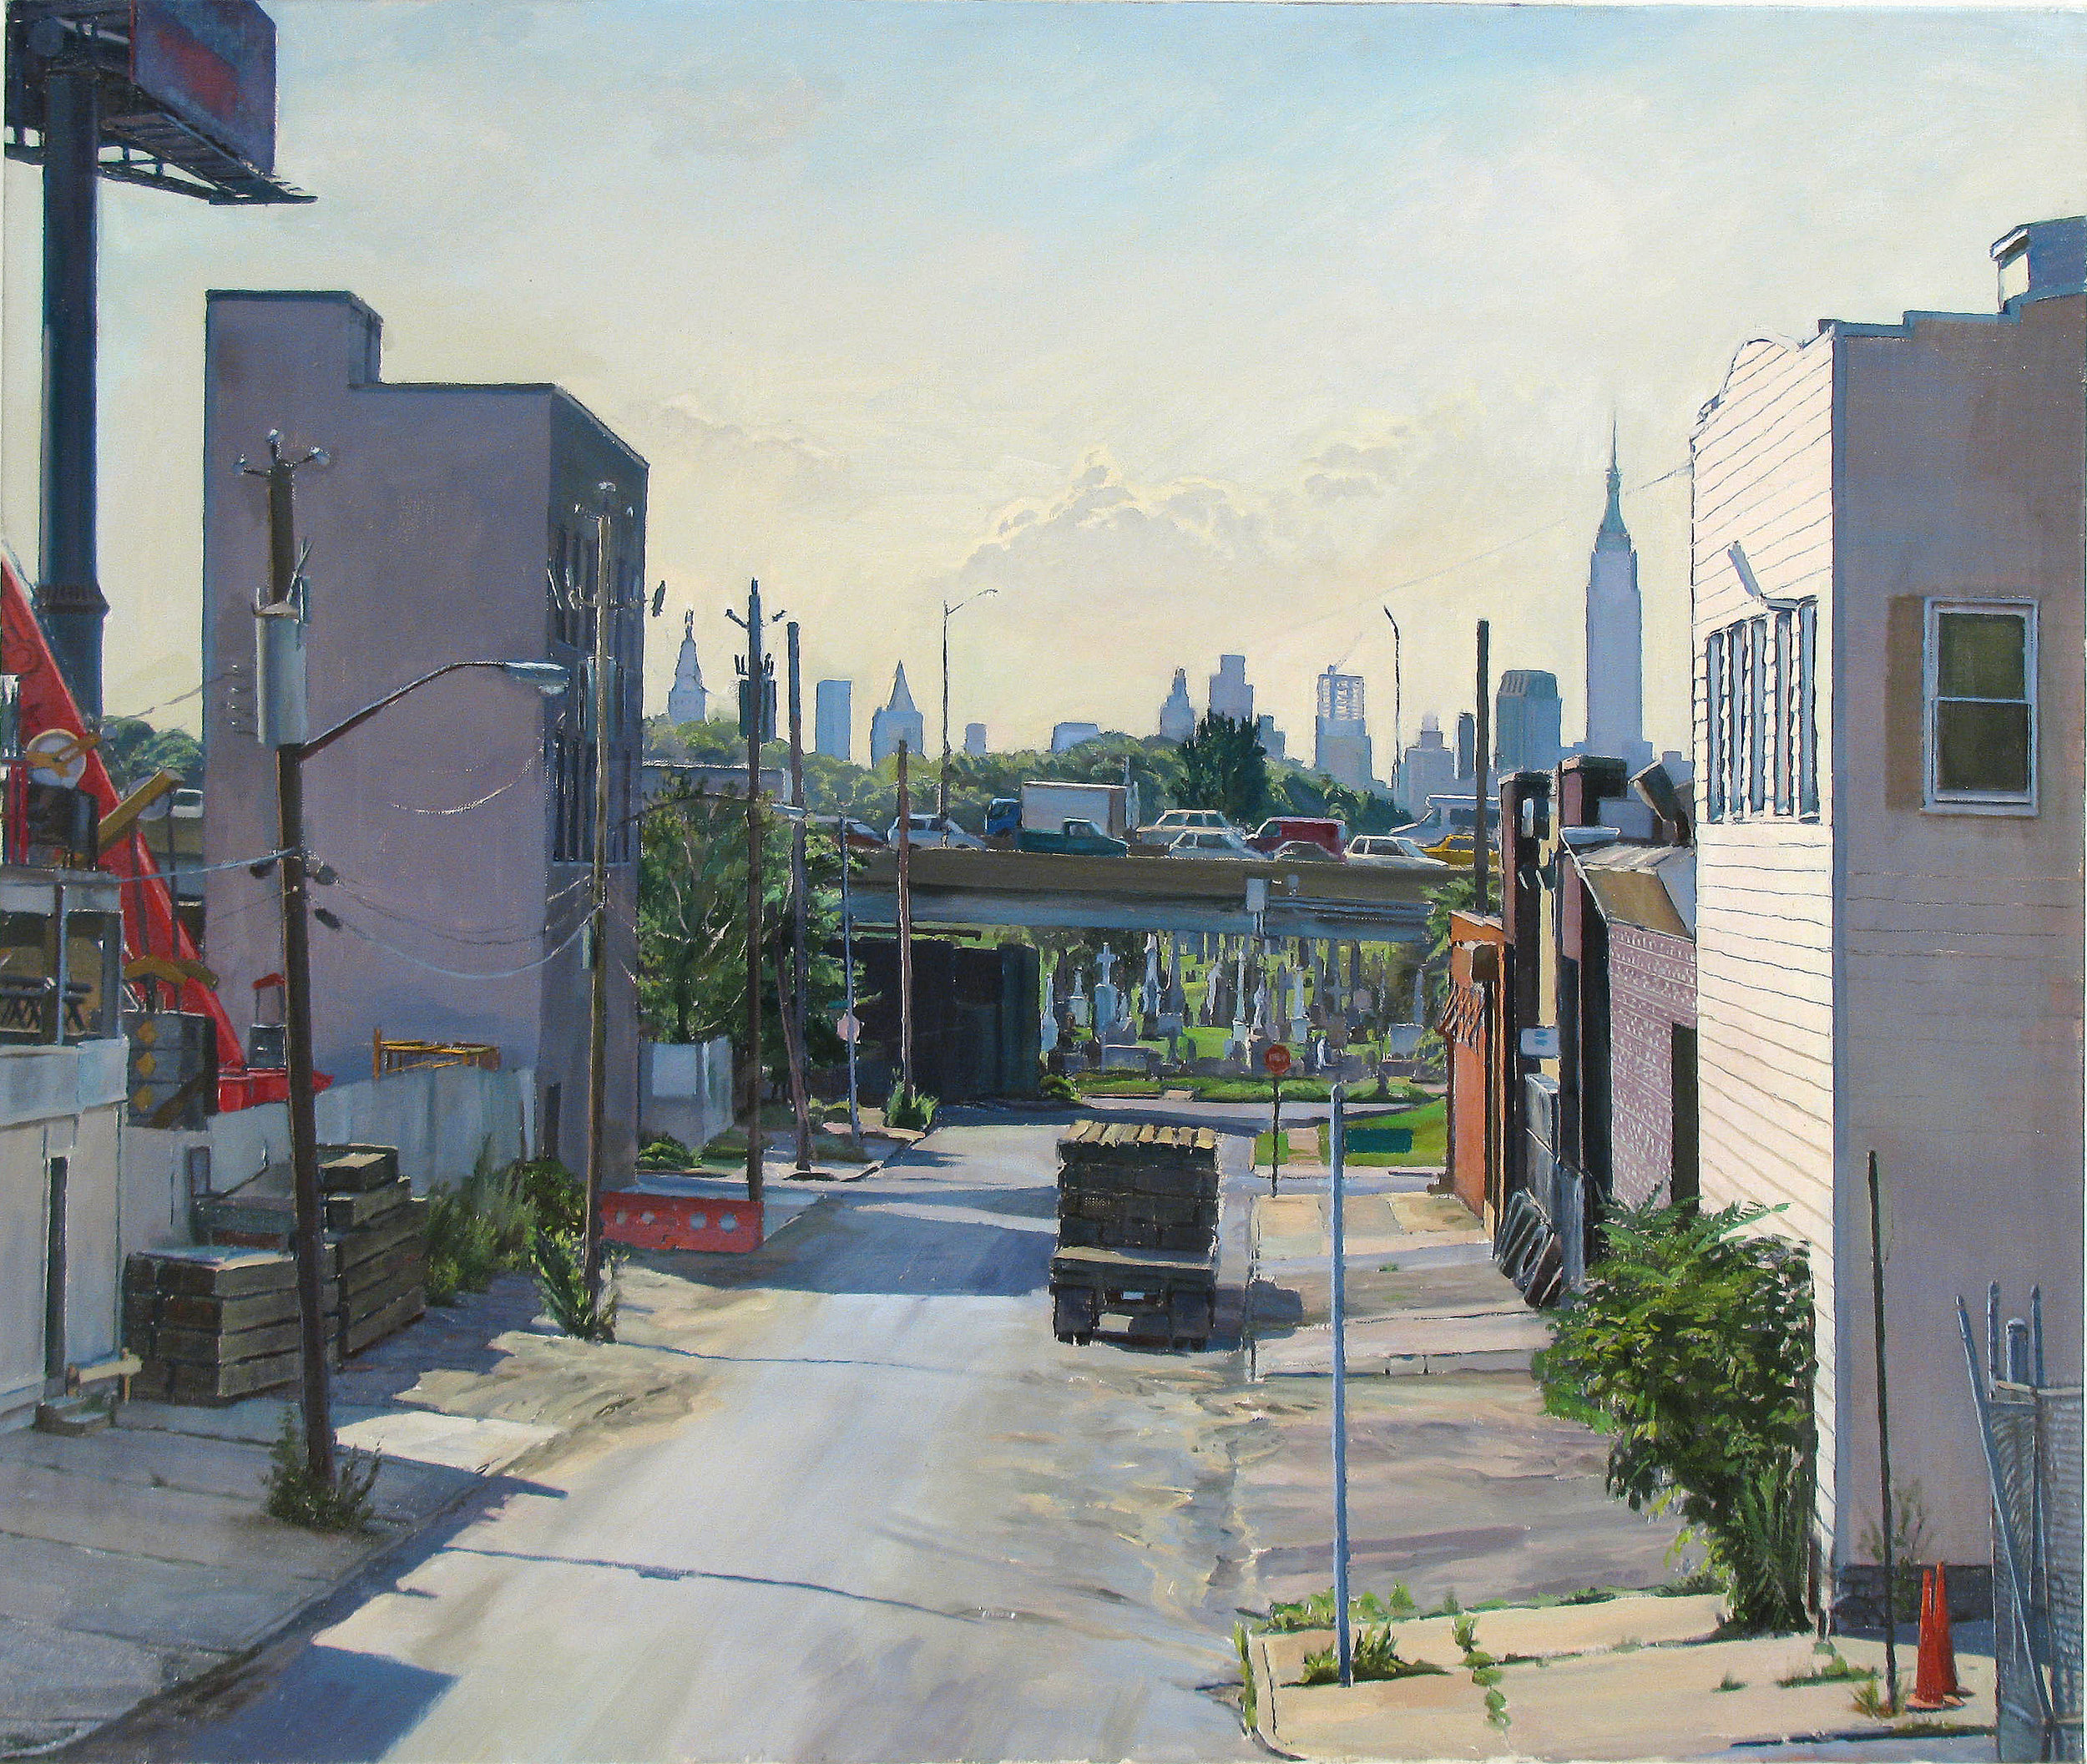 "END OF ROAD oil on linen 28 x 33"" 2010"